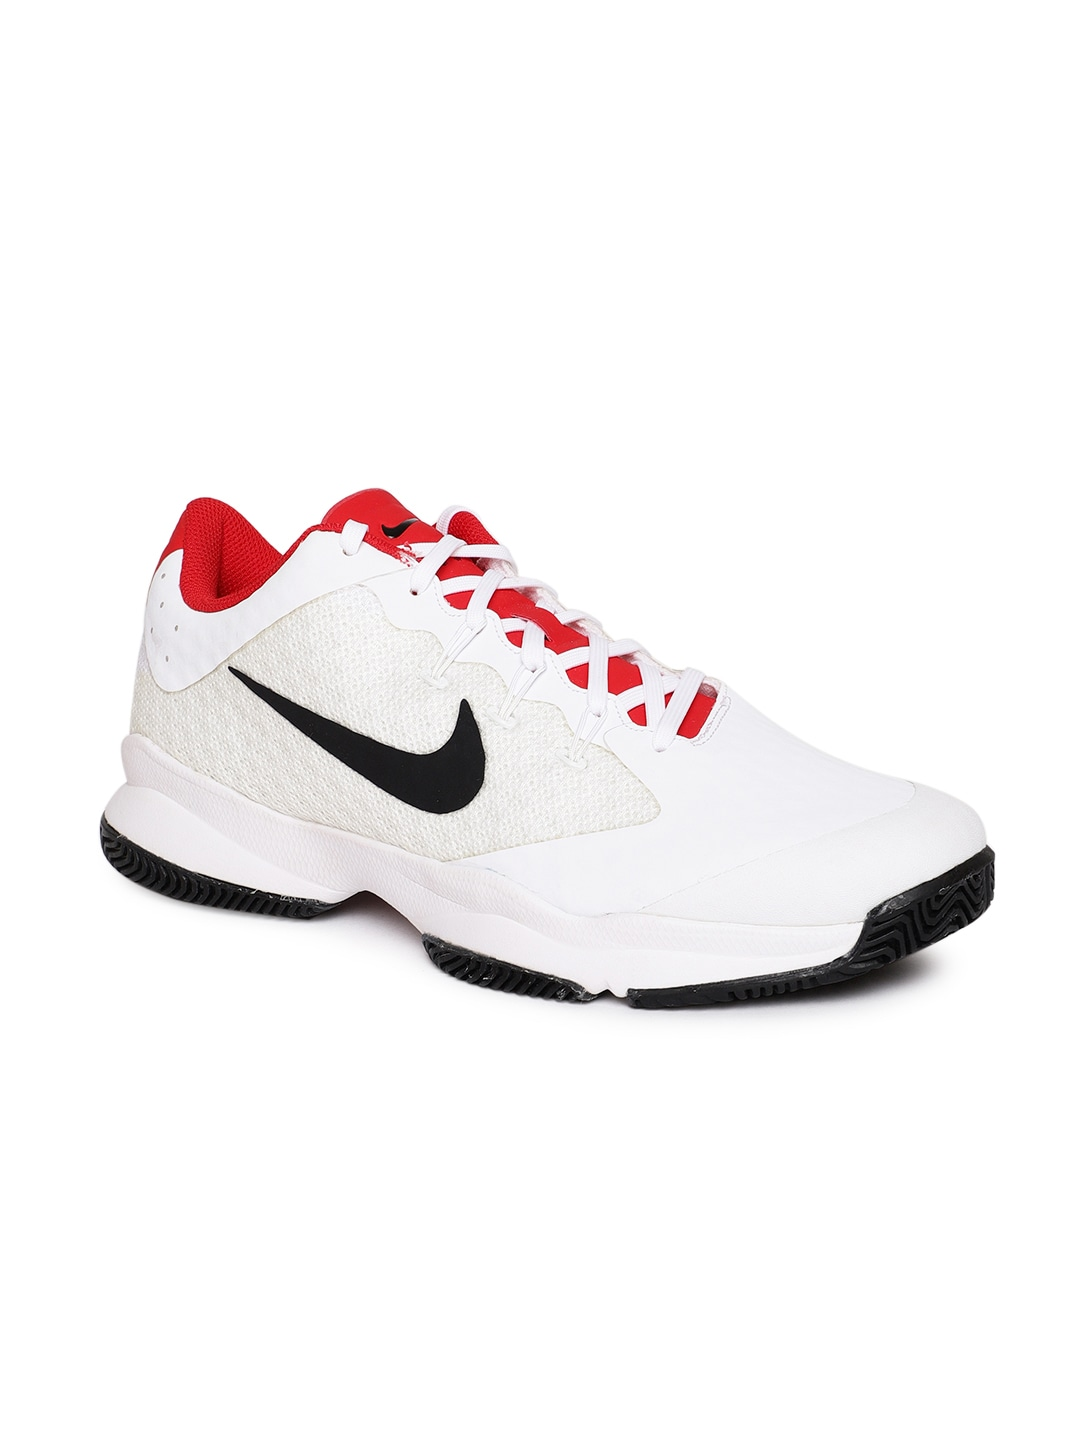 72e3ecddb6f076 Superman Nike - Buy Superman Nike online in India